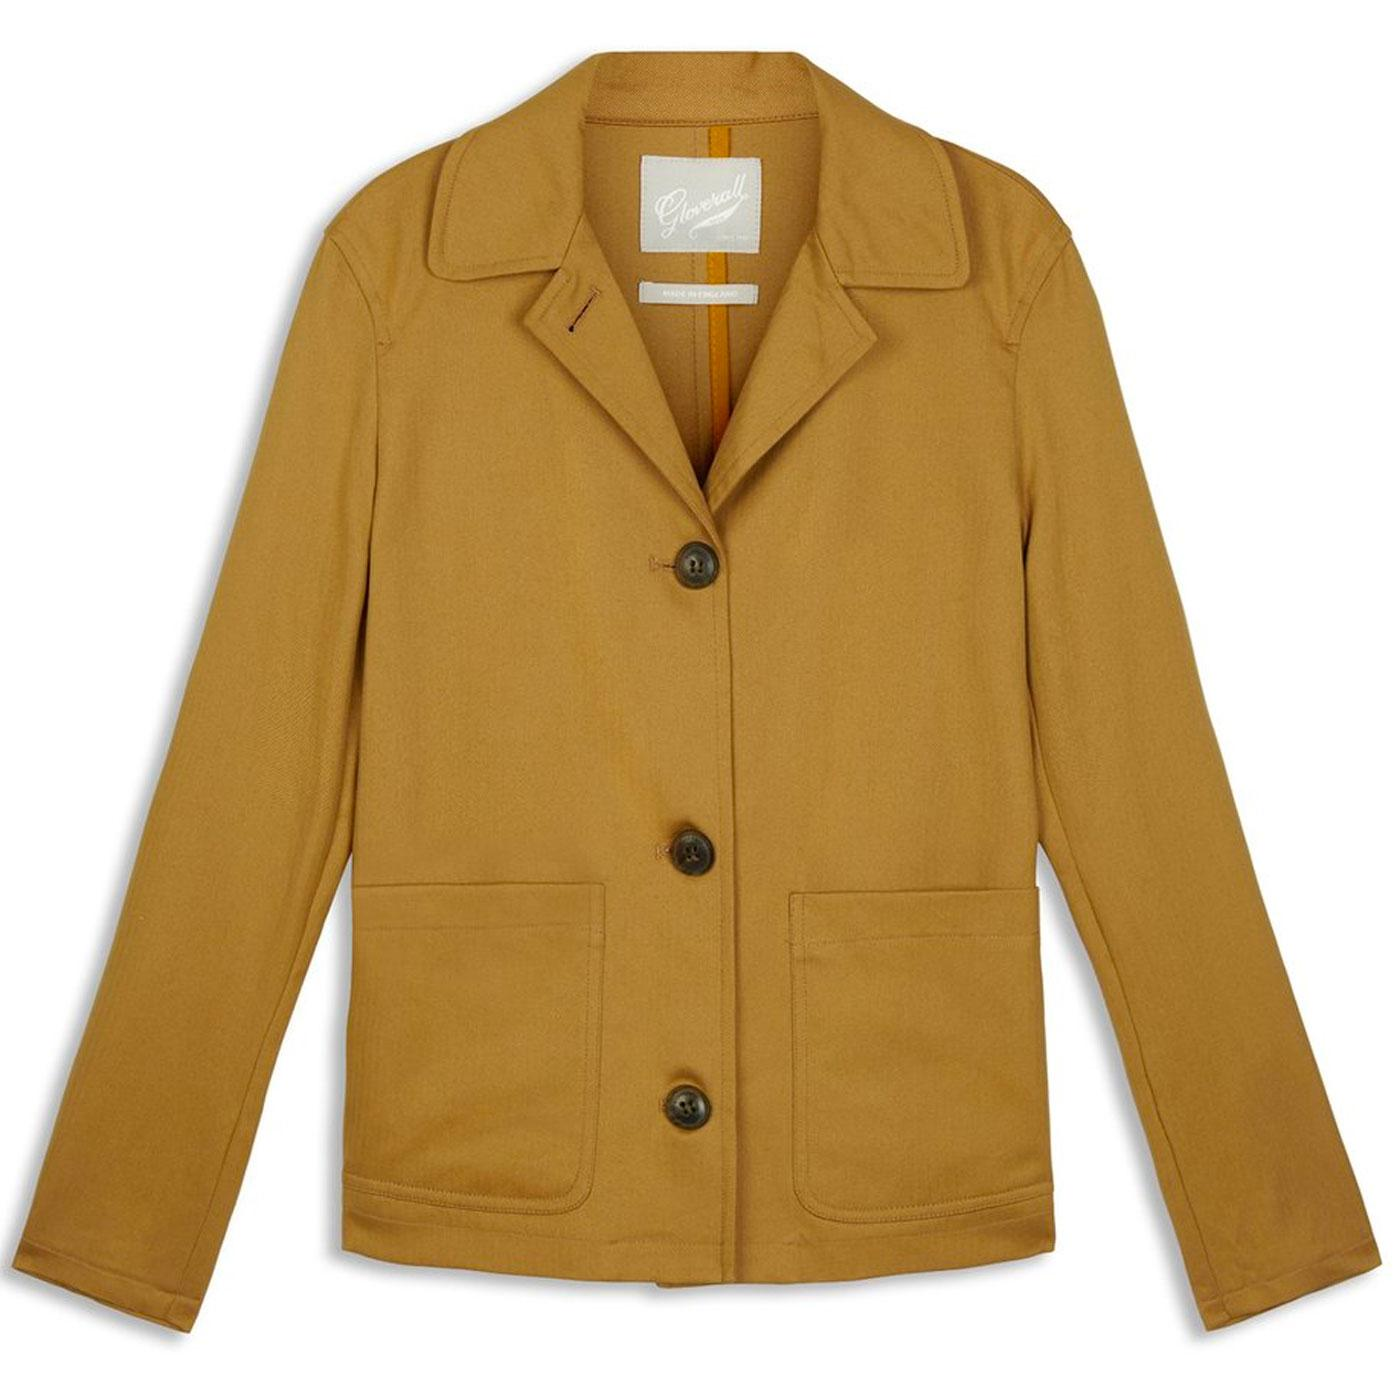 Charlotte GLOVERALL Women's Retro 60s Work Jacket